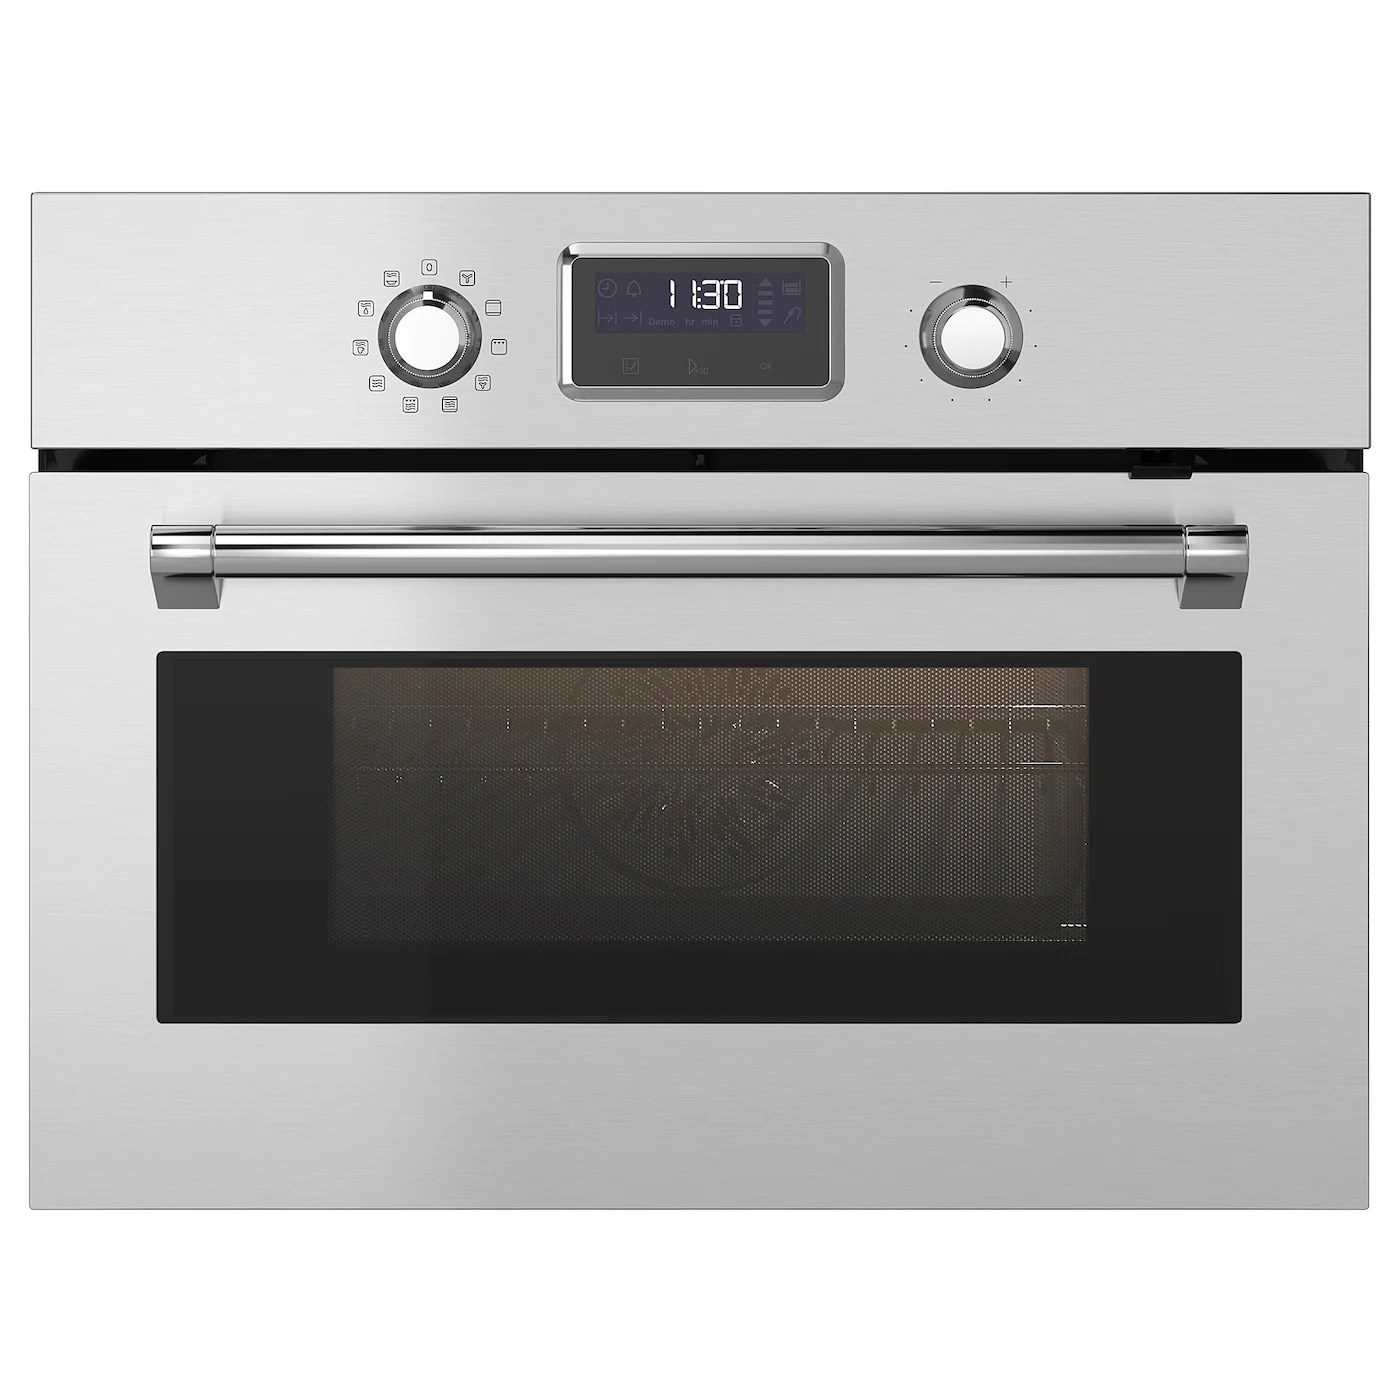 convection microwave oven buy online